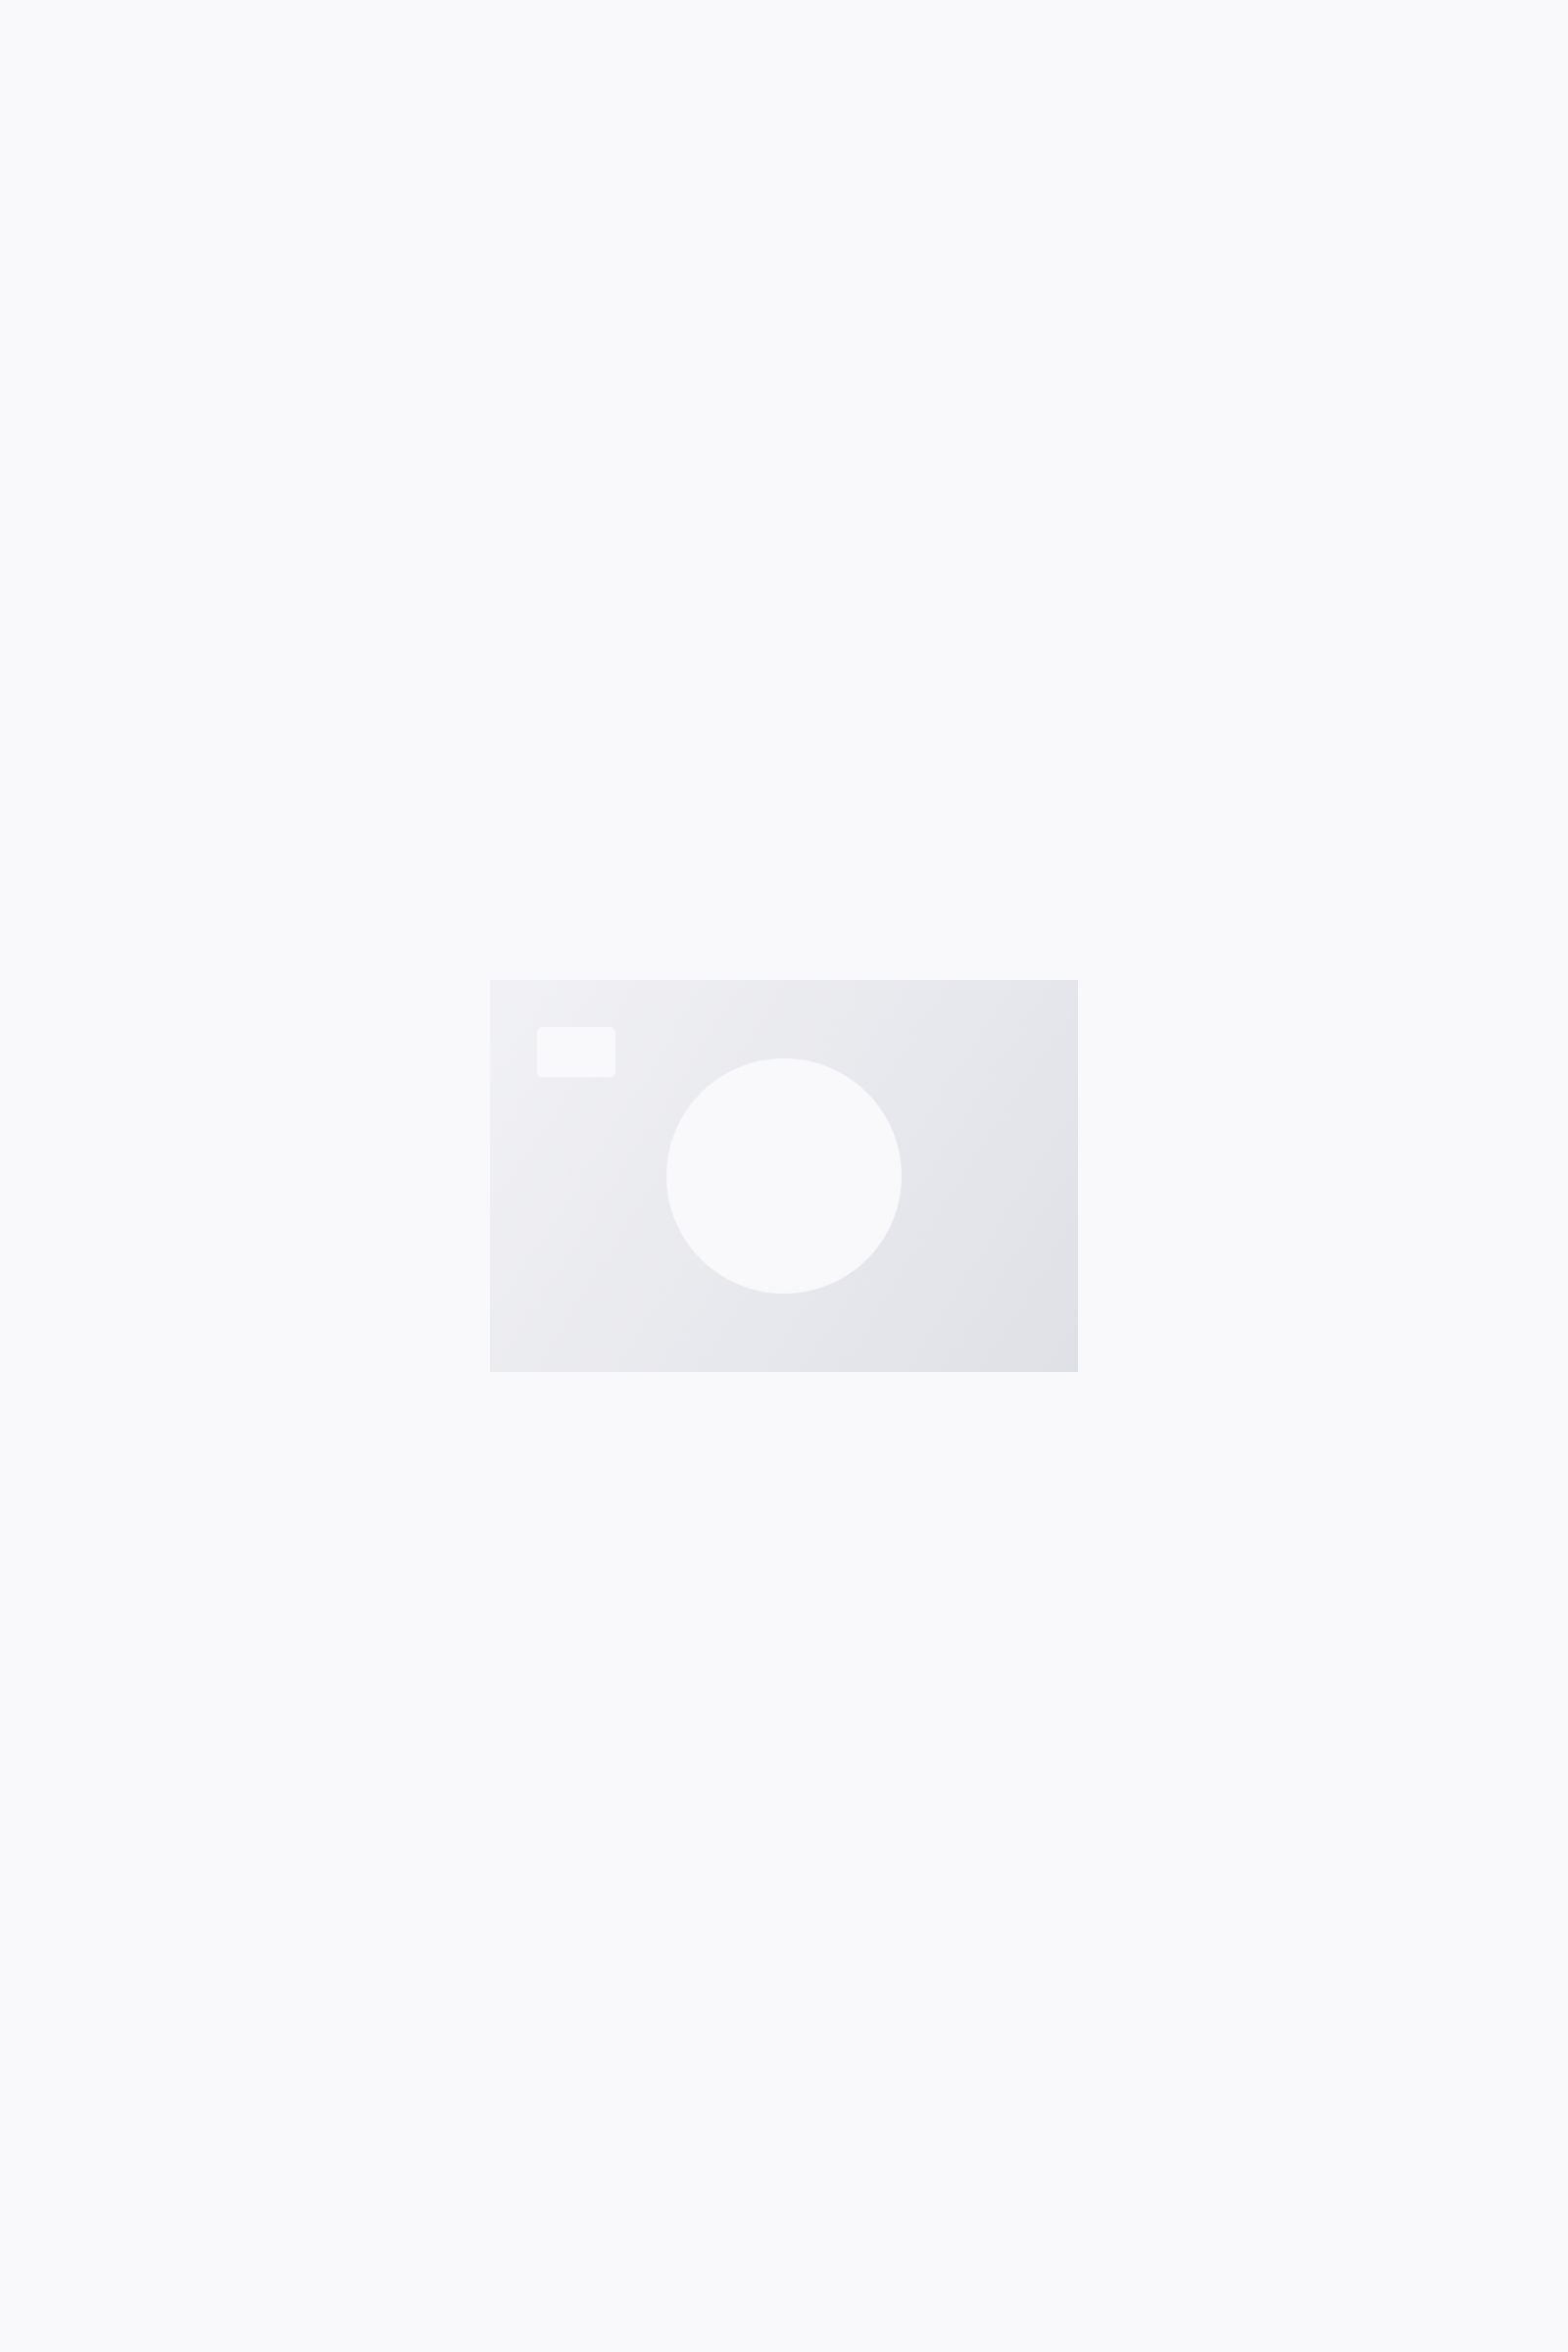 COS SWEAT SHORTS,off-white